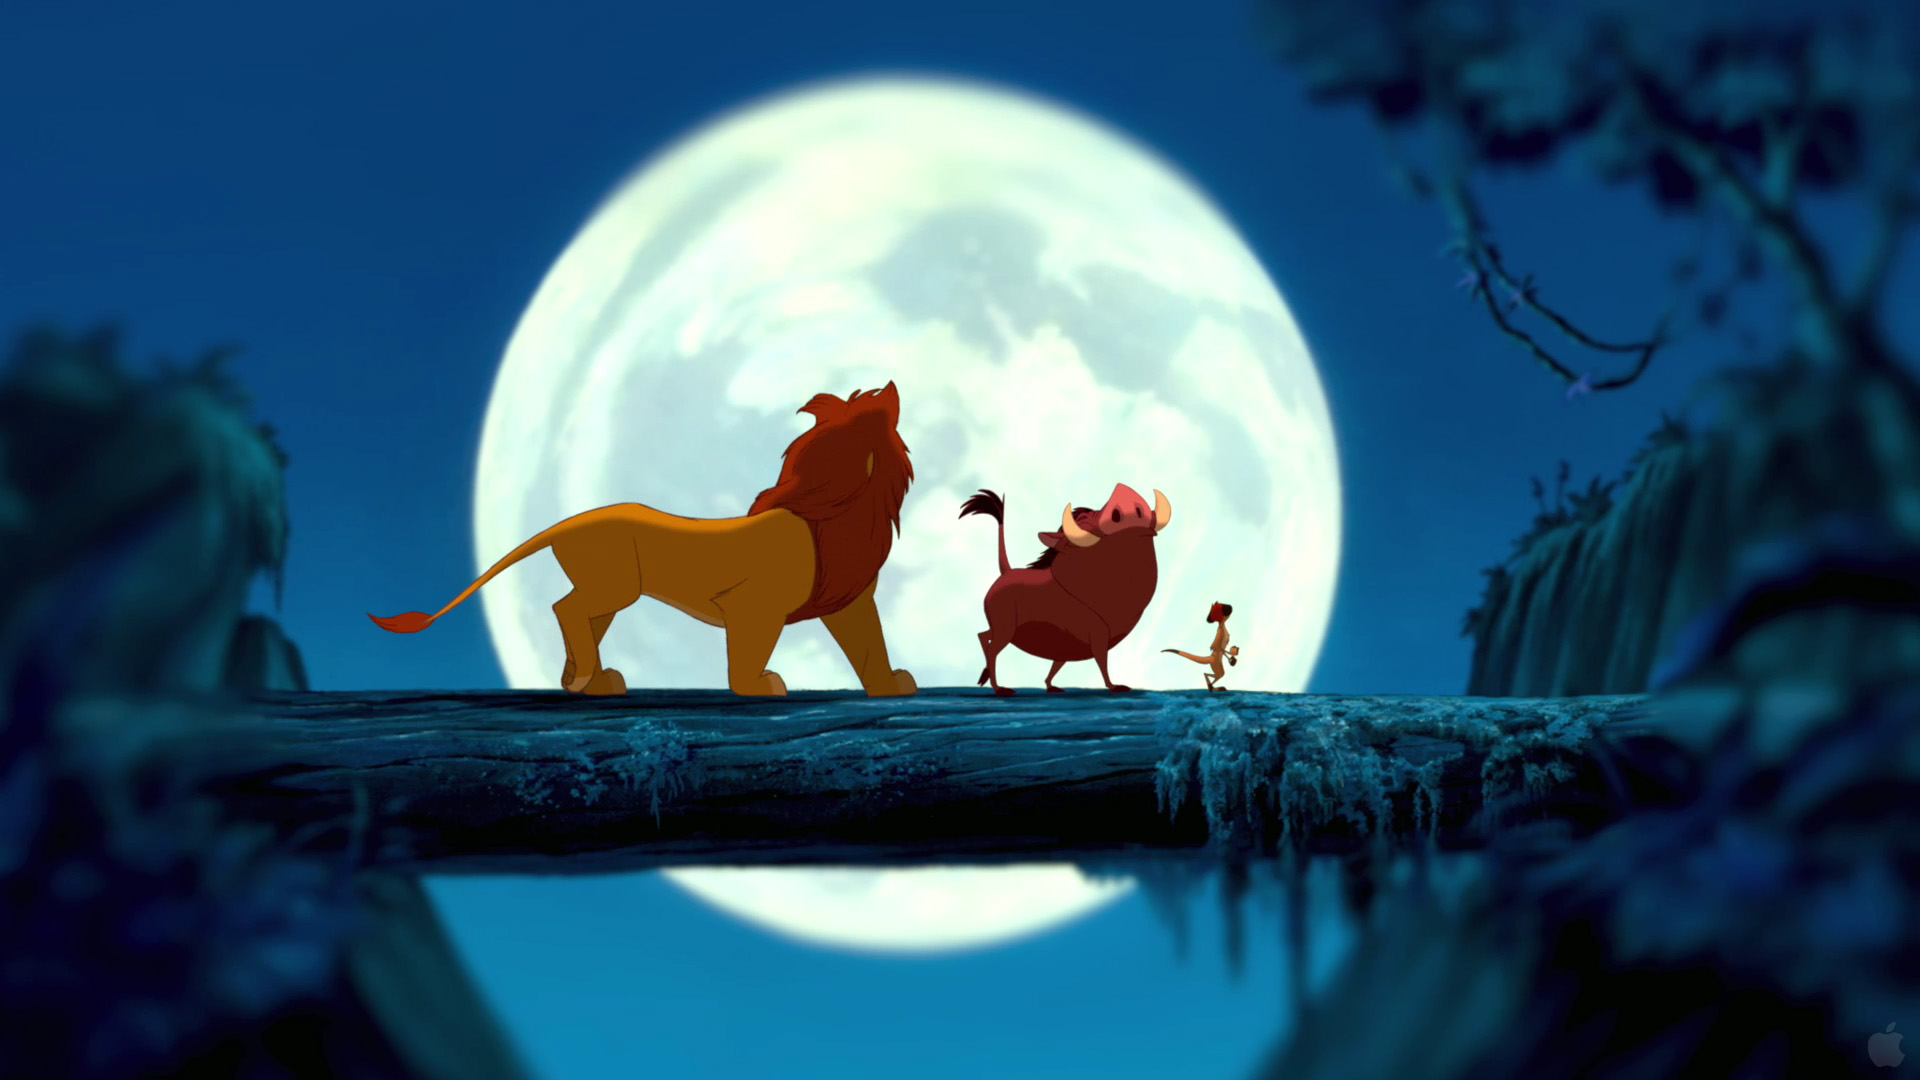 The Lion King Wallpapers Desktop Wallpapers 1920x1080